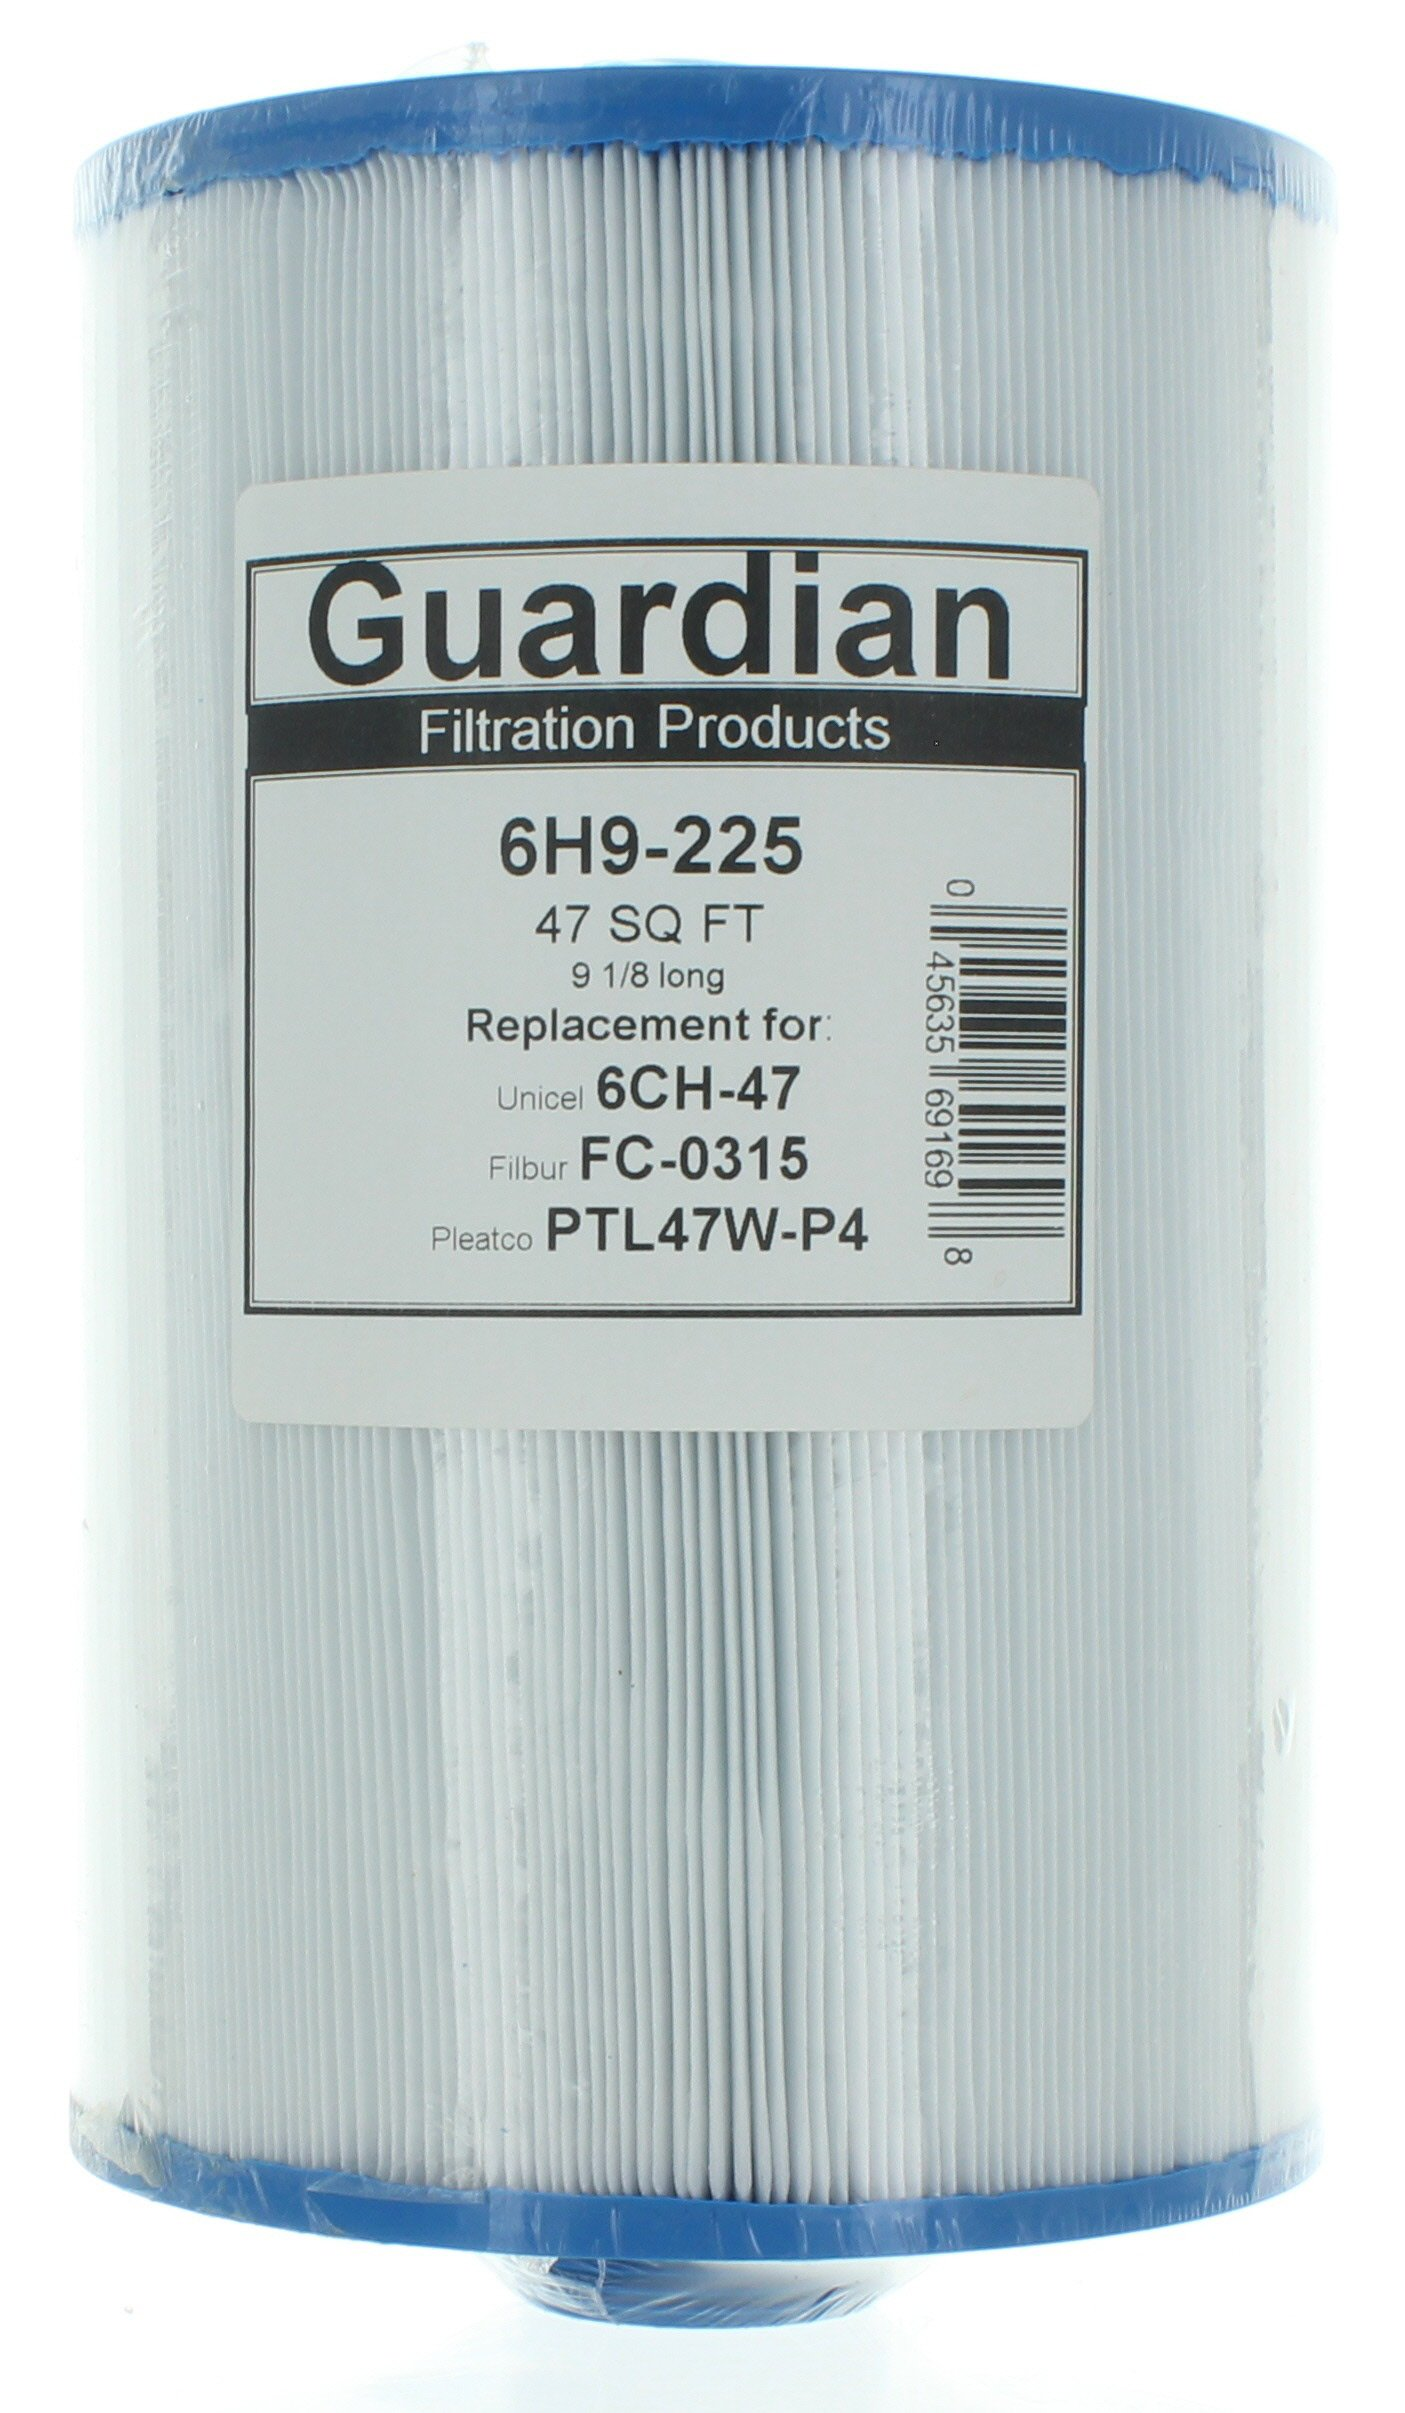 2 Guardian Pool Spa Filter Cartridge Replaces 6CH-47 PTL47W FC-0315 Top Load 47 sq ft by Guardian Filtration Products